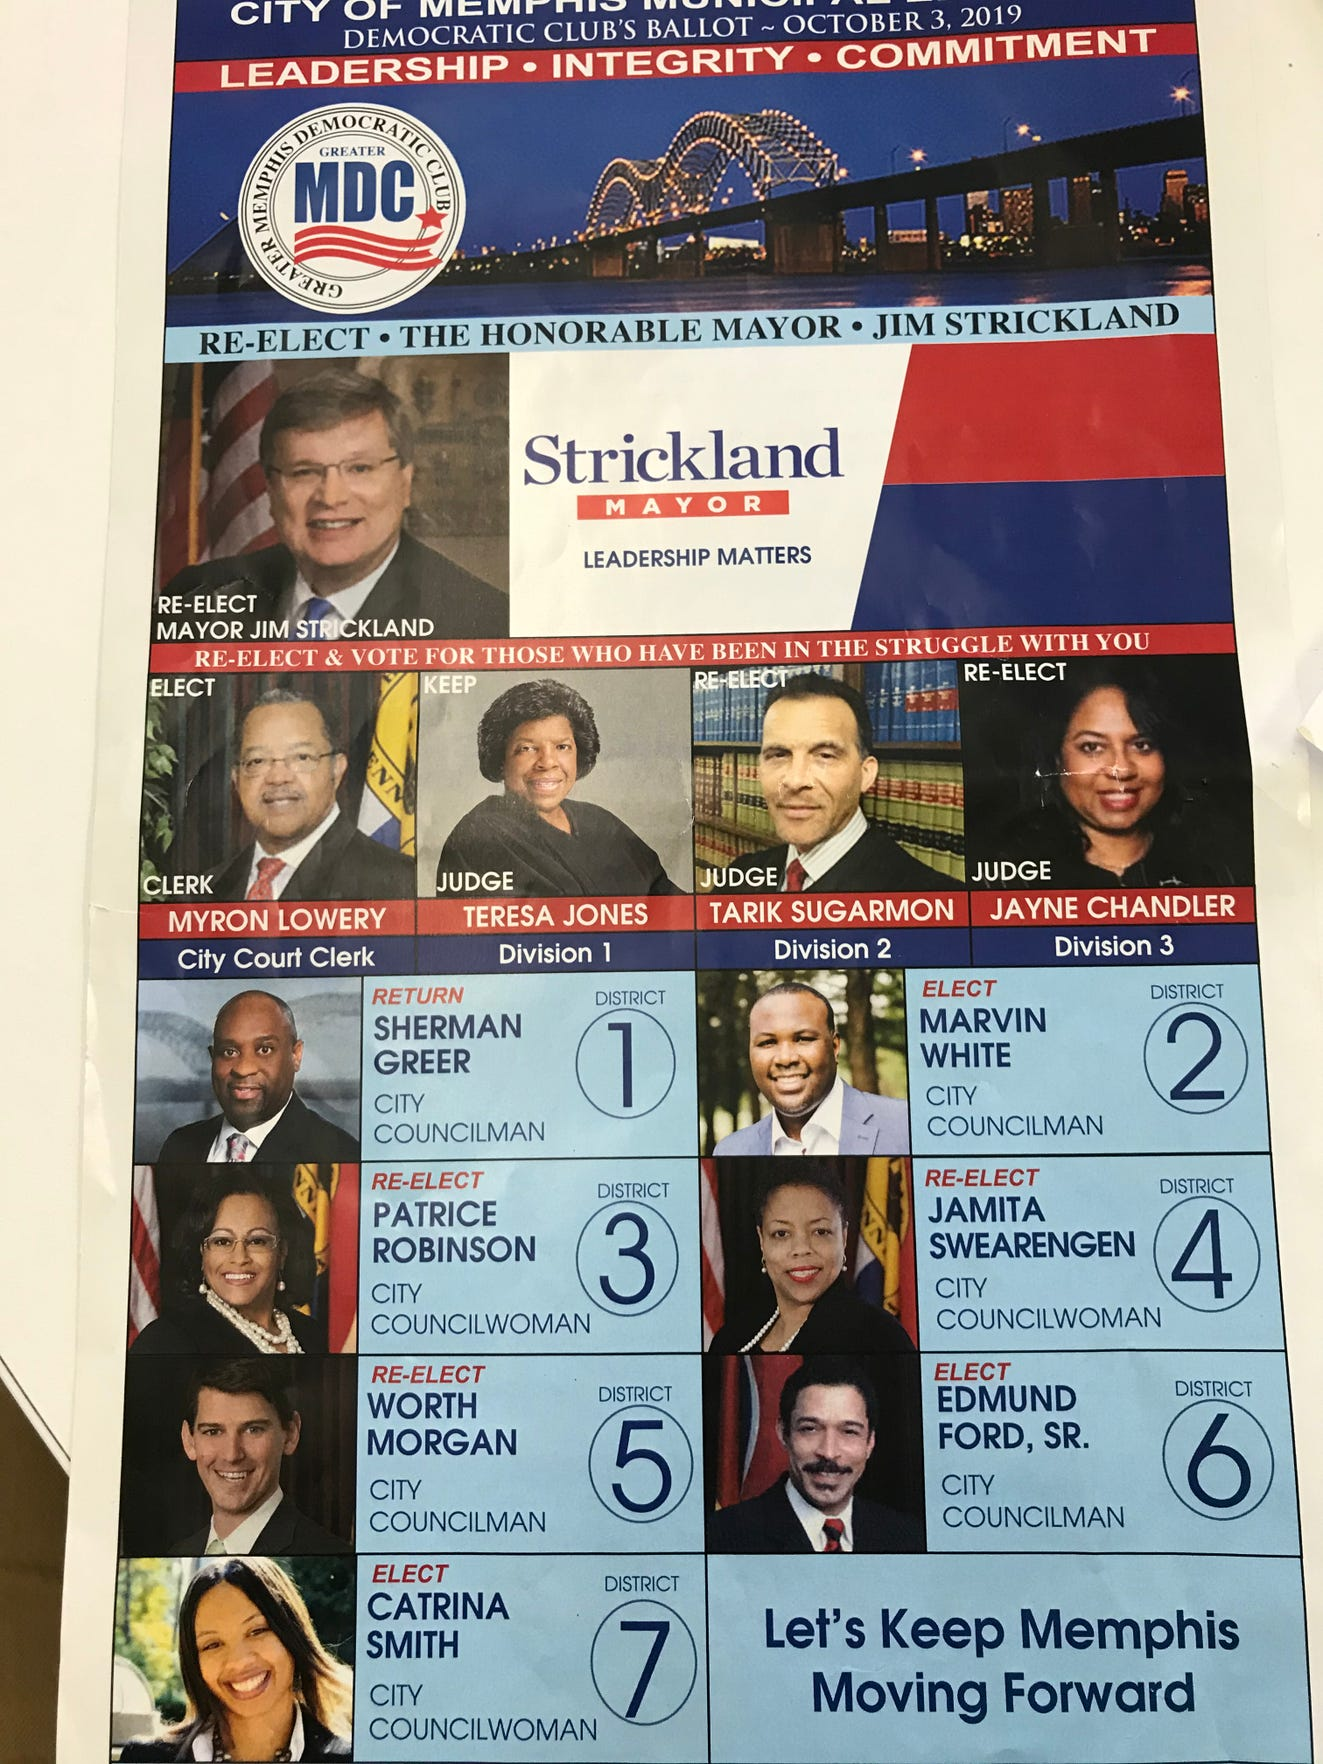 The Greater Memphis Democratic Club ballot featured candidates along with official-looking logos and slogans.